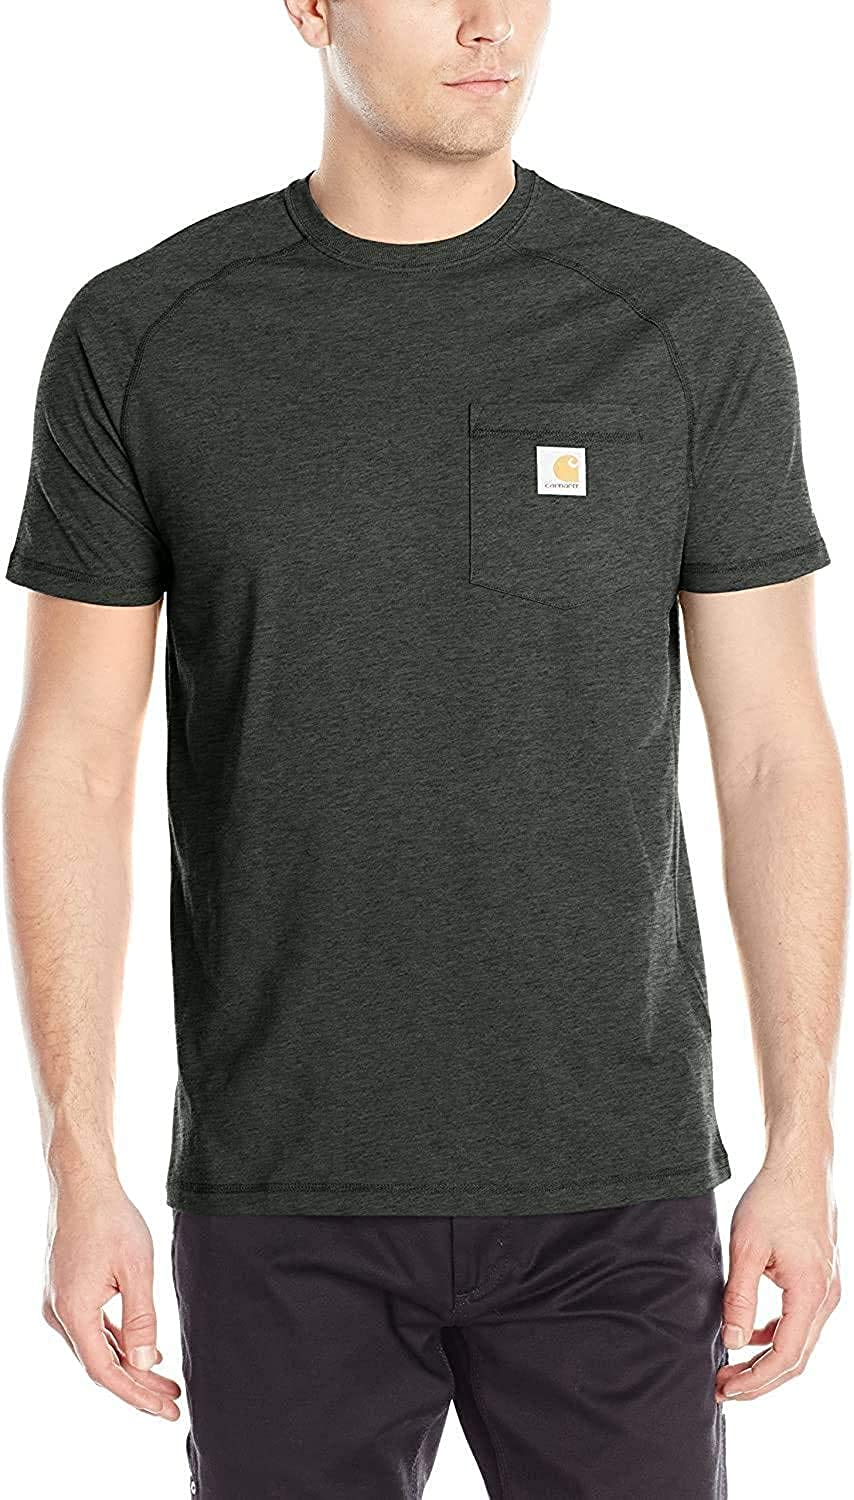 Carhartt Men's Force Cotton Delmont Short Sleeve T-shirt (Regular and Big & Tall Sizes): Clothing